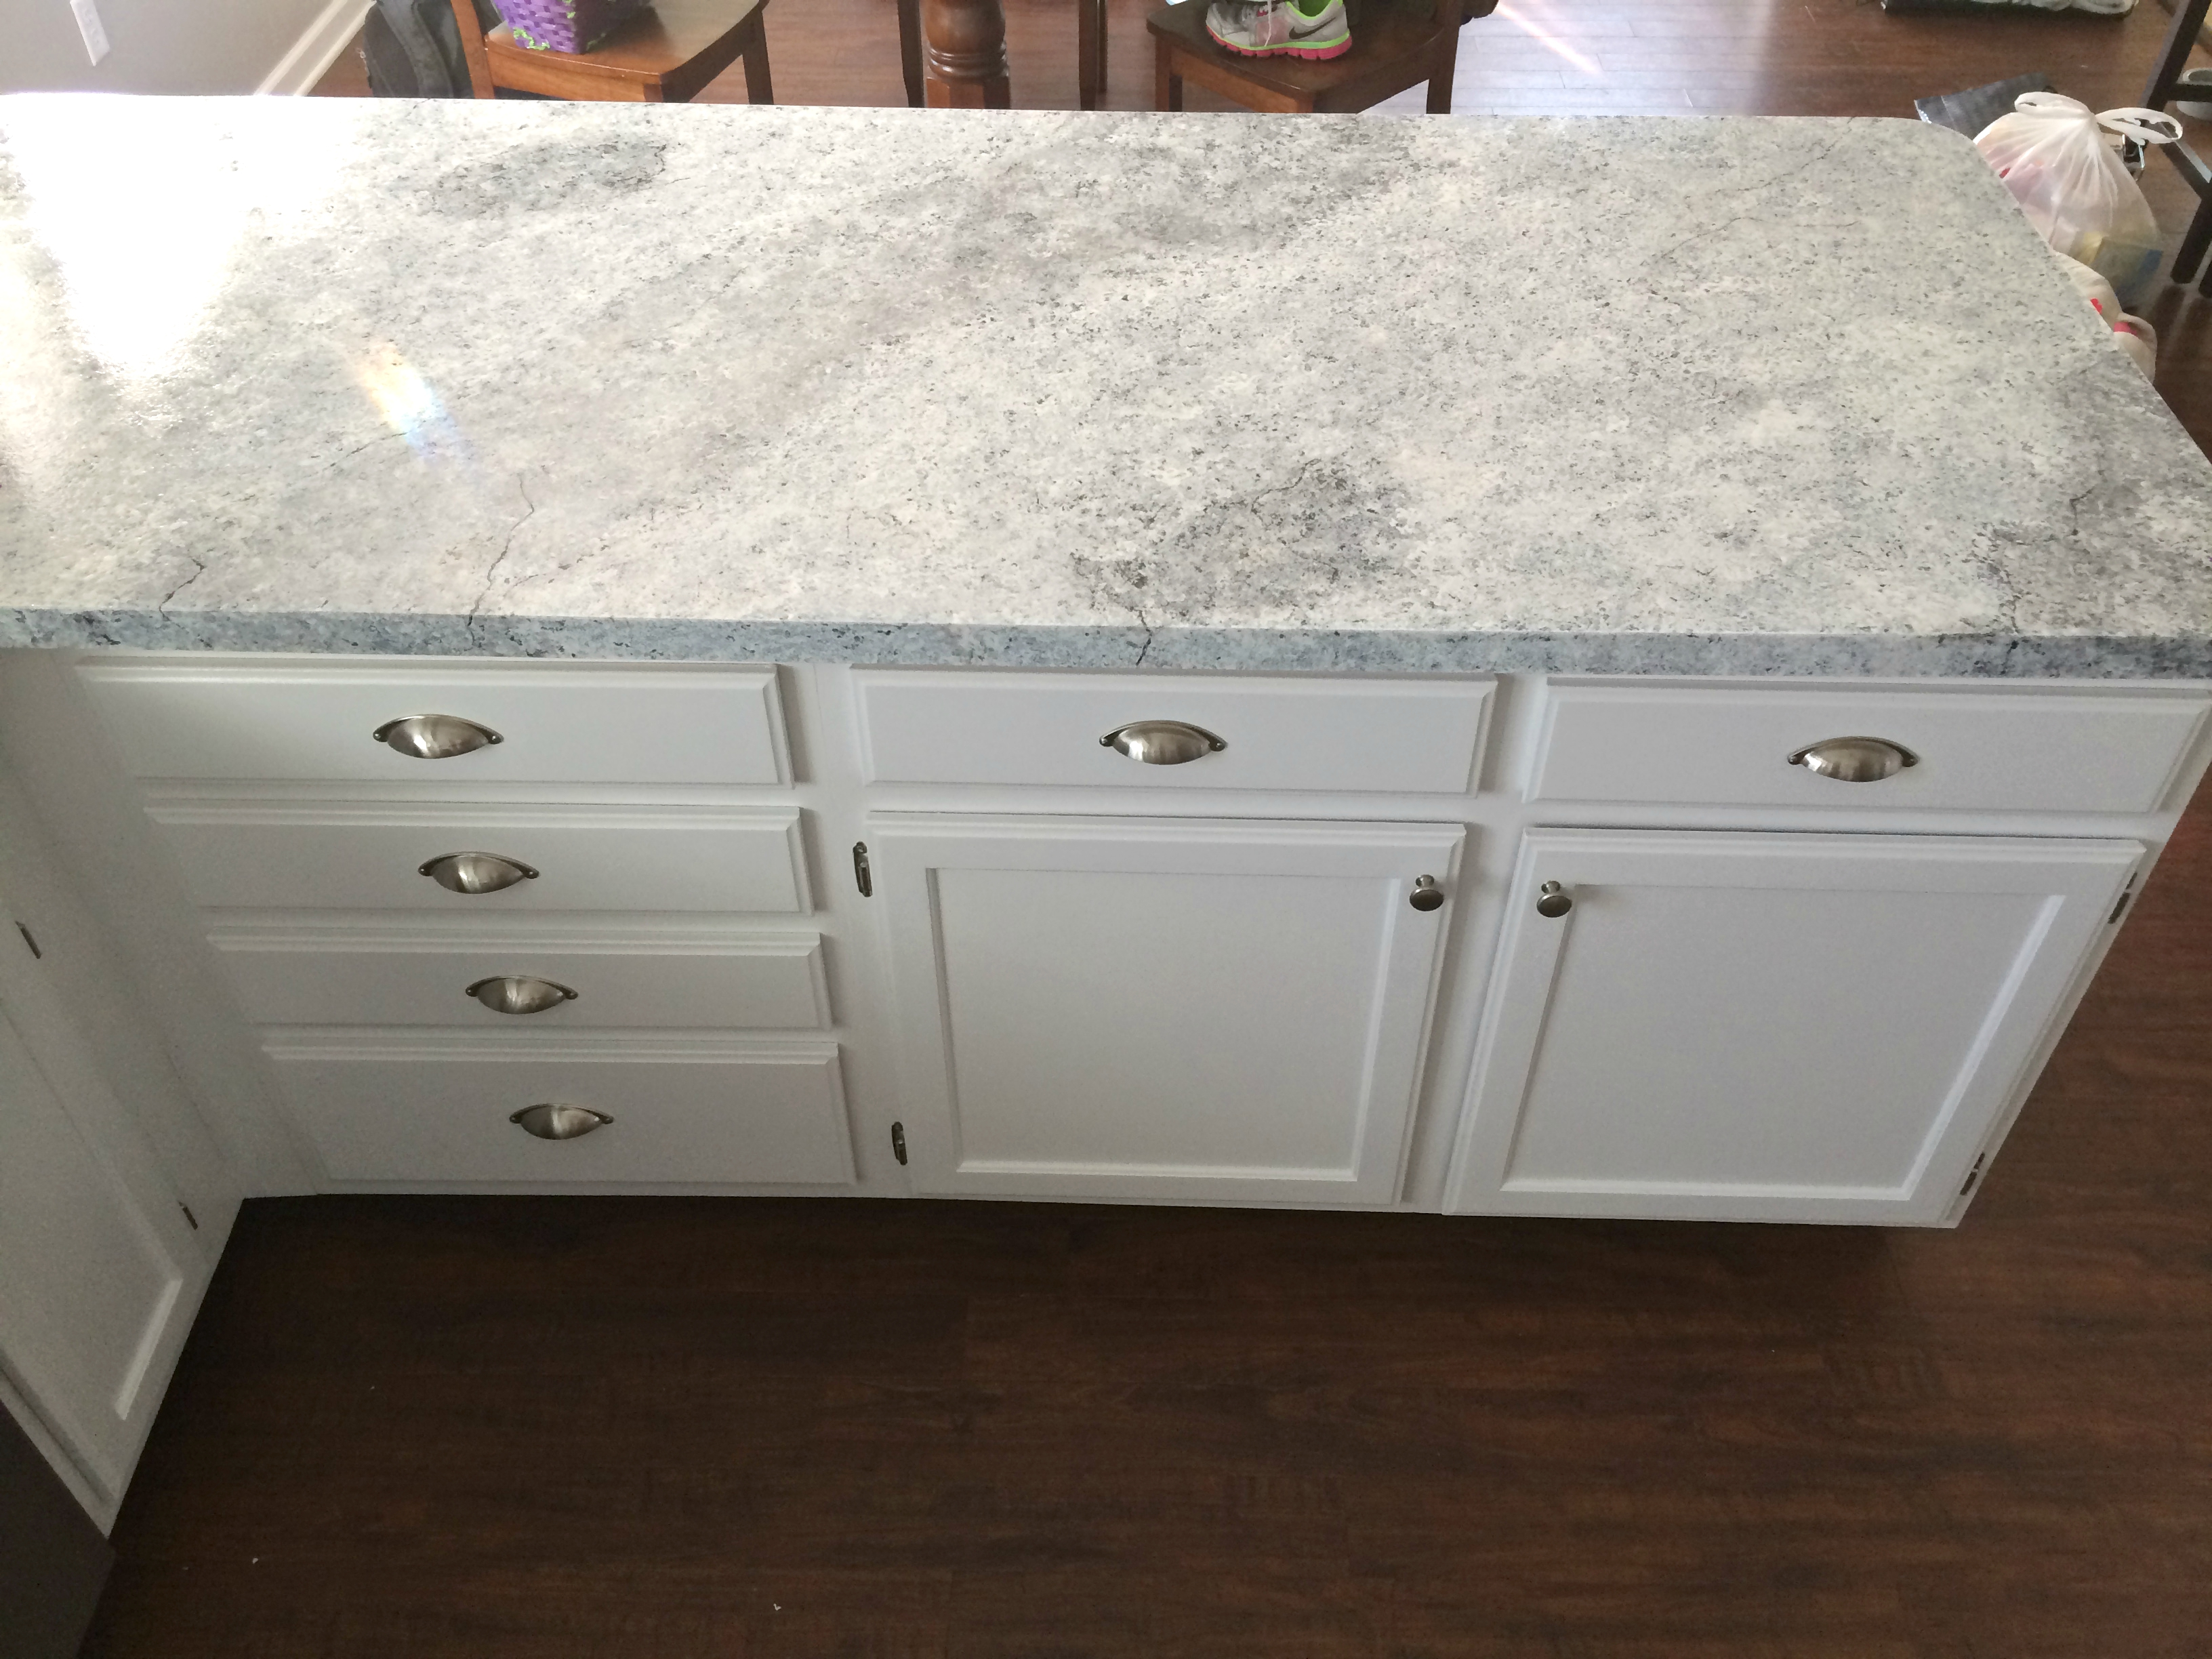 Countertop Paint Instructions : Countertop Redo with Giani Granite Countertop Paint ? Life in Pearls ...